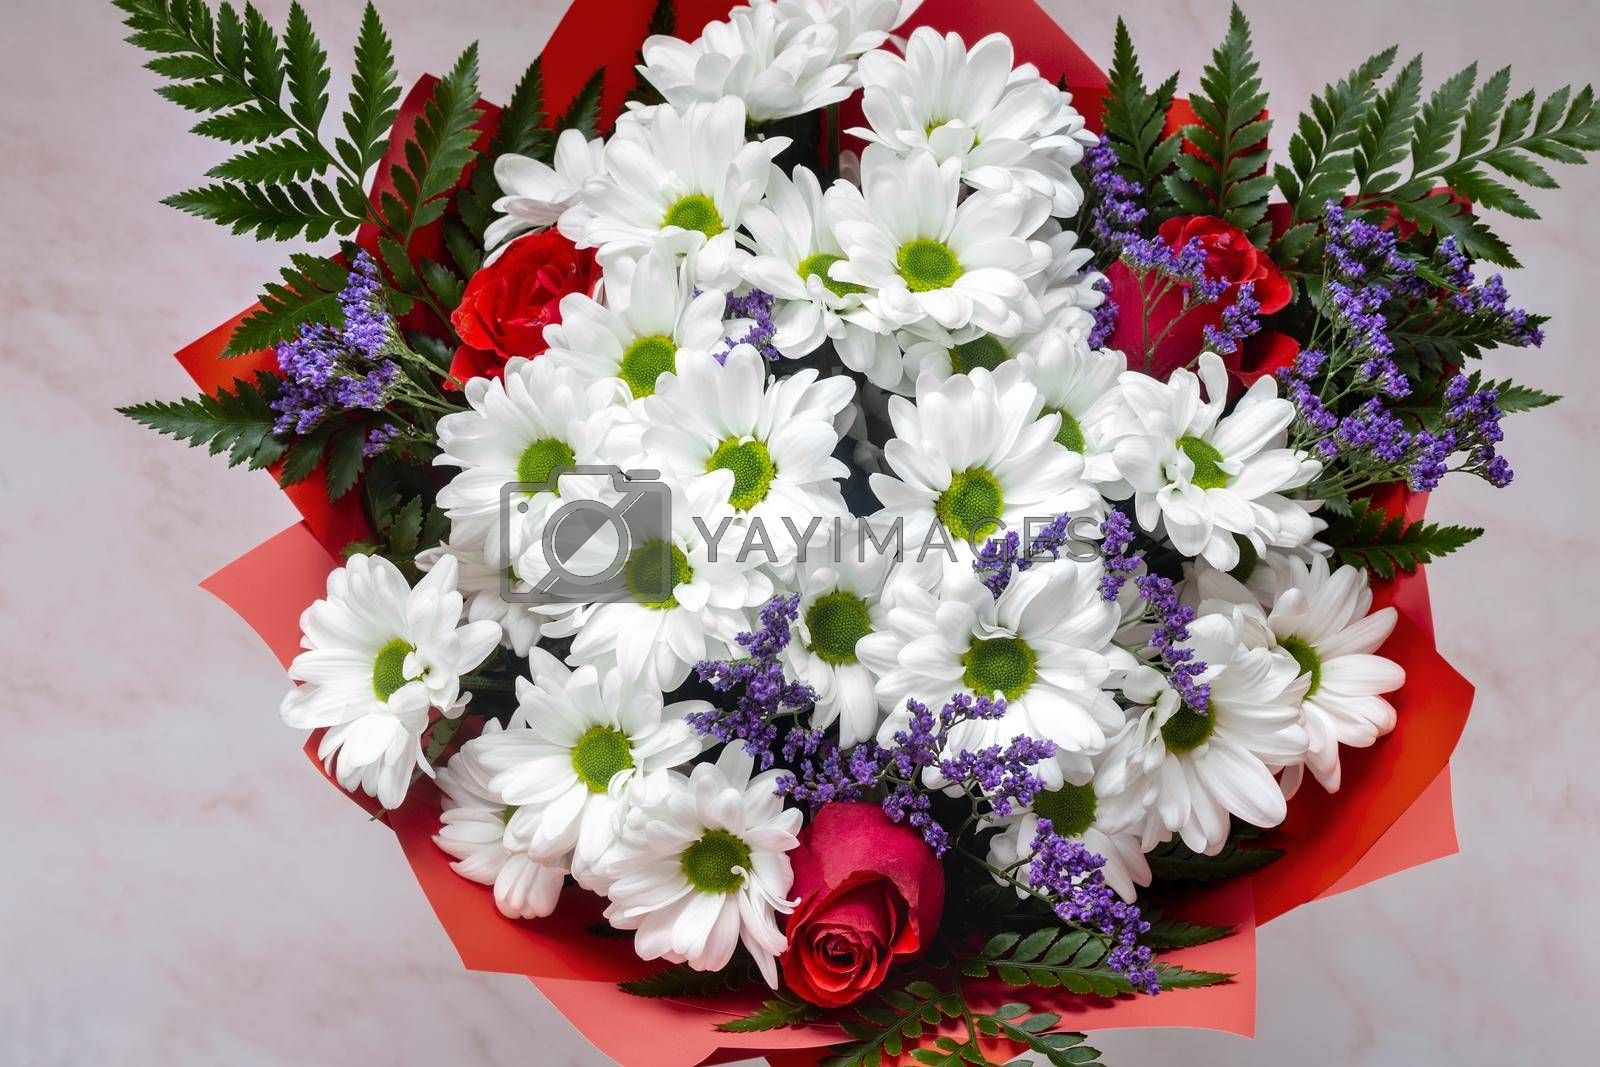 A beautifully designed bouquet of white chrysanthemums and red roses on a light background. Top view, close-up.